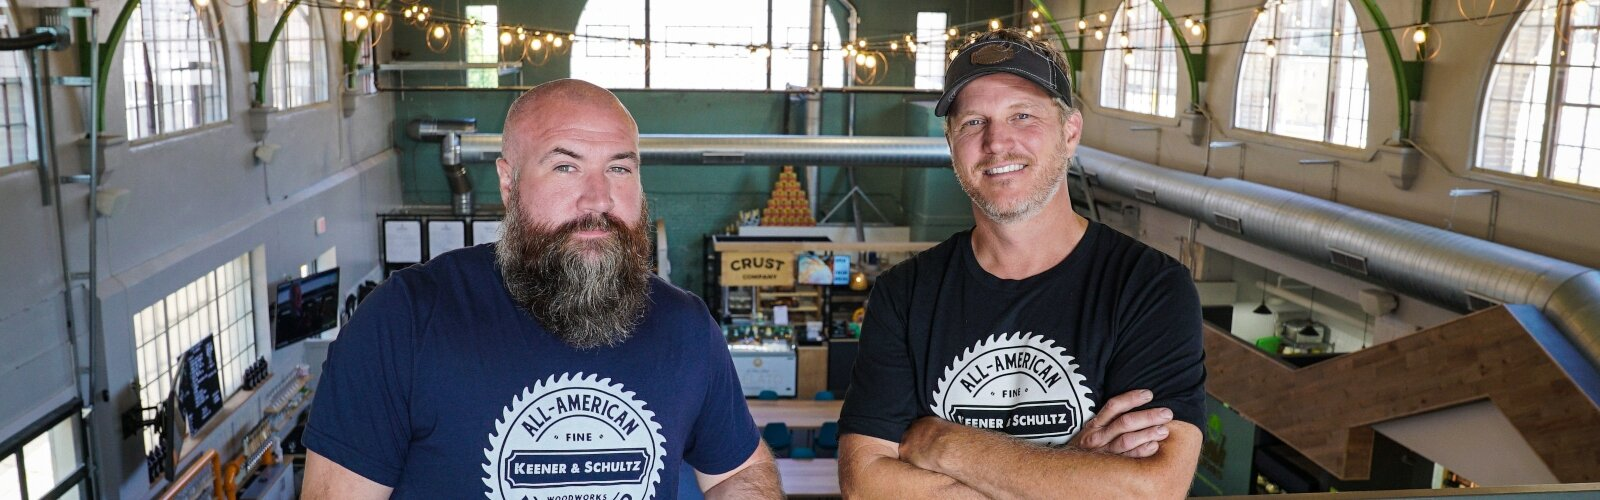 Mark Schultz and Gary Keener own and operate Keener & Schultz Fine Woodworks, through which they build and sell handmade, custom pieces locally and nationwide.